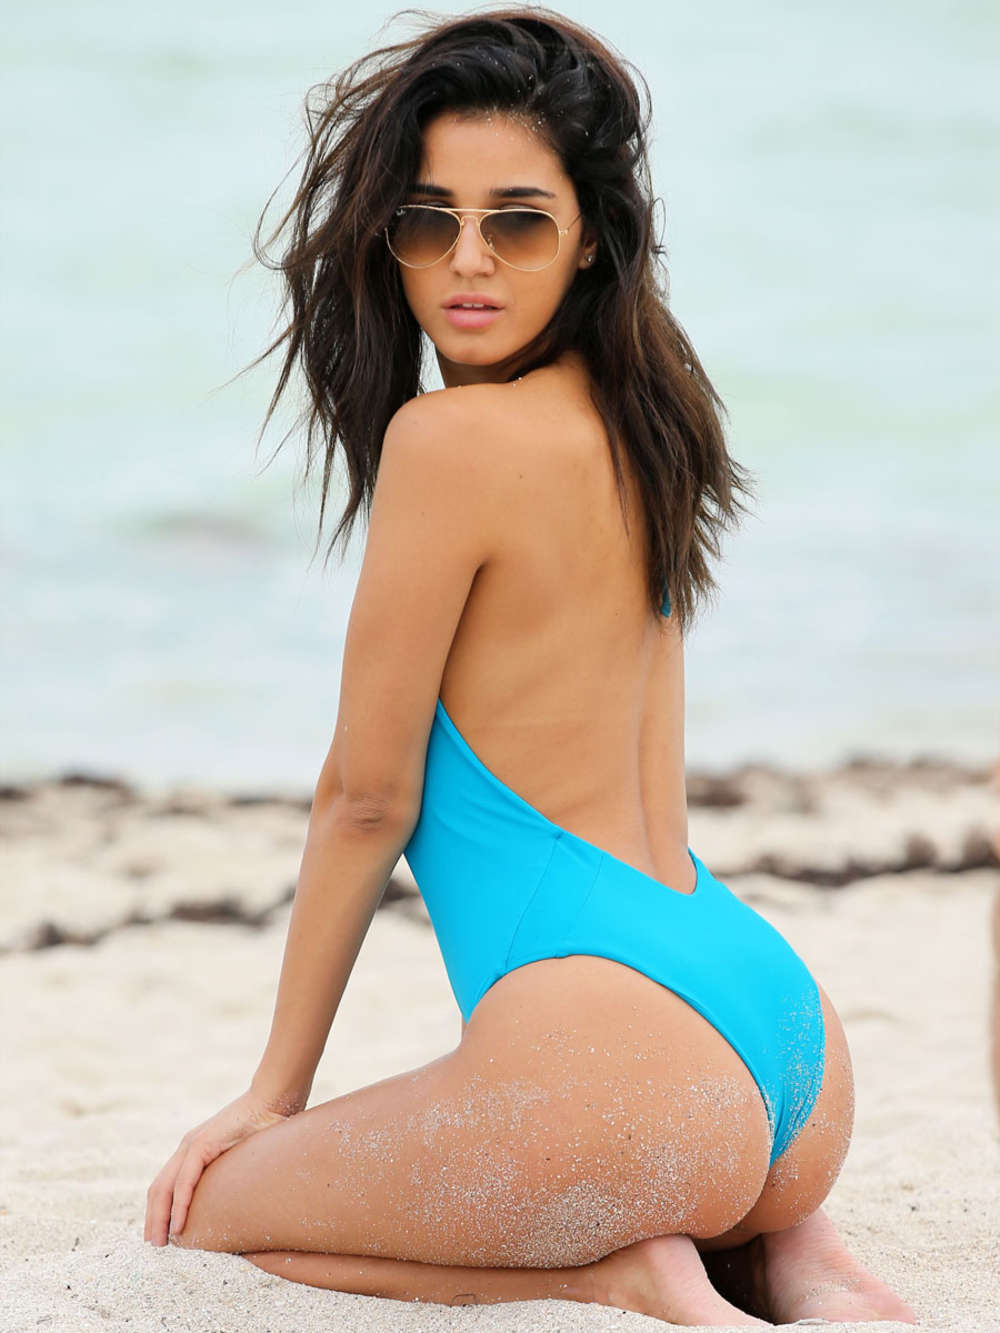 Ashley Sky 2014 : Ashley Sky Swimsuit Photos: Miami Beach -11